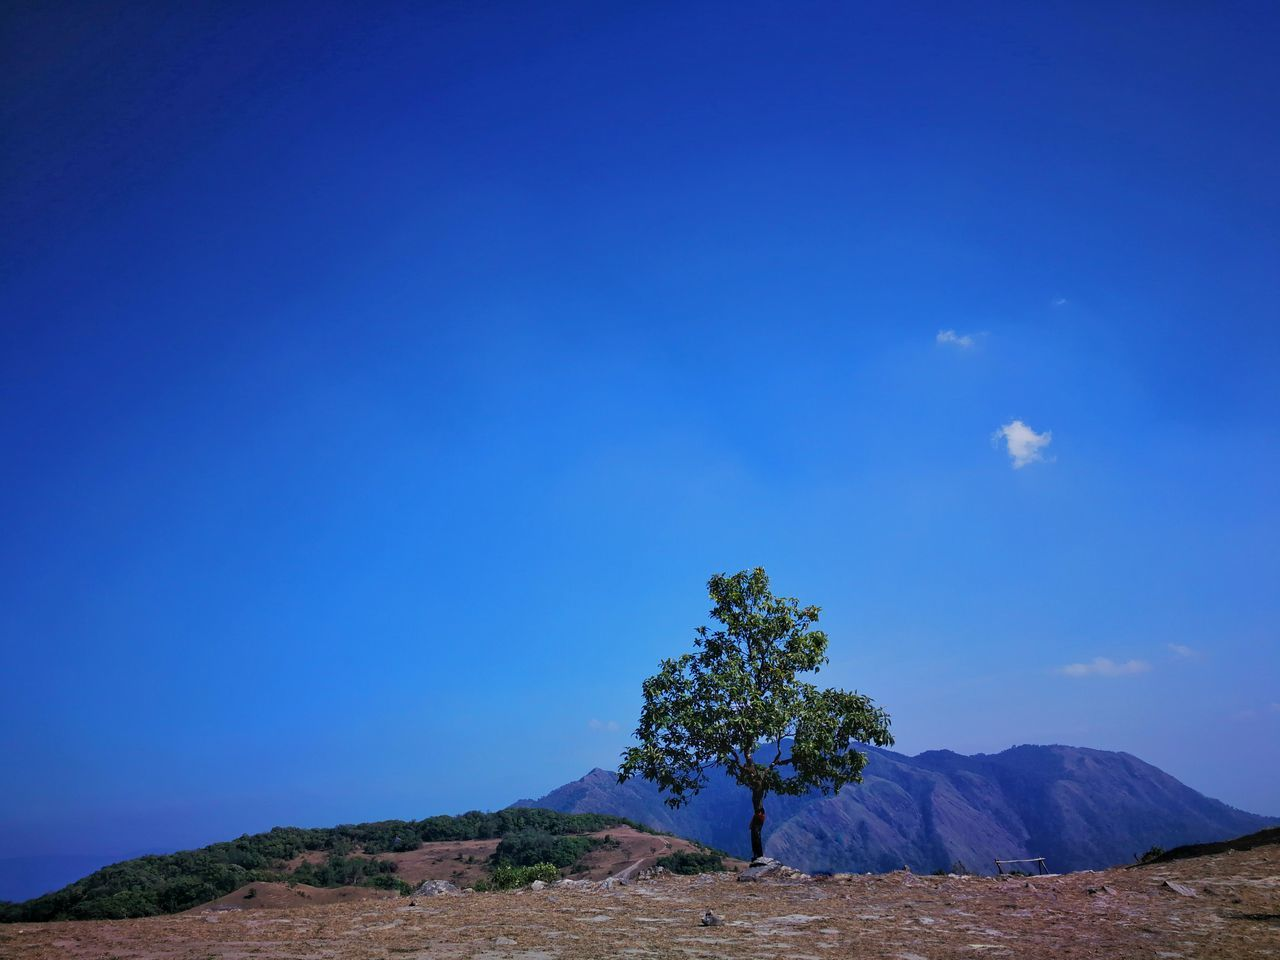 Alone and lonely. Lanscape Landmark Terrace Tree Meadow Top Adventure Romance Beautiful Beauty Mountain Hills Sunny Hight Cloud Blue Sky Countryside Rural Sunshine Forest Light Environment Sun Standing